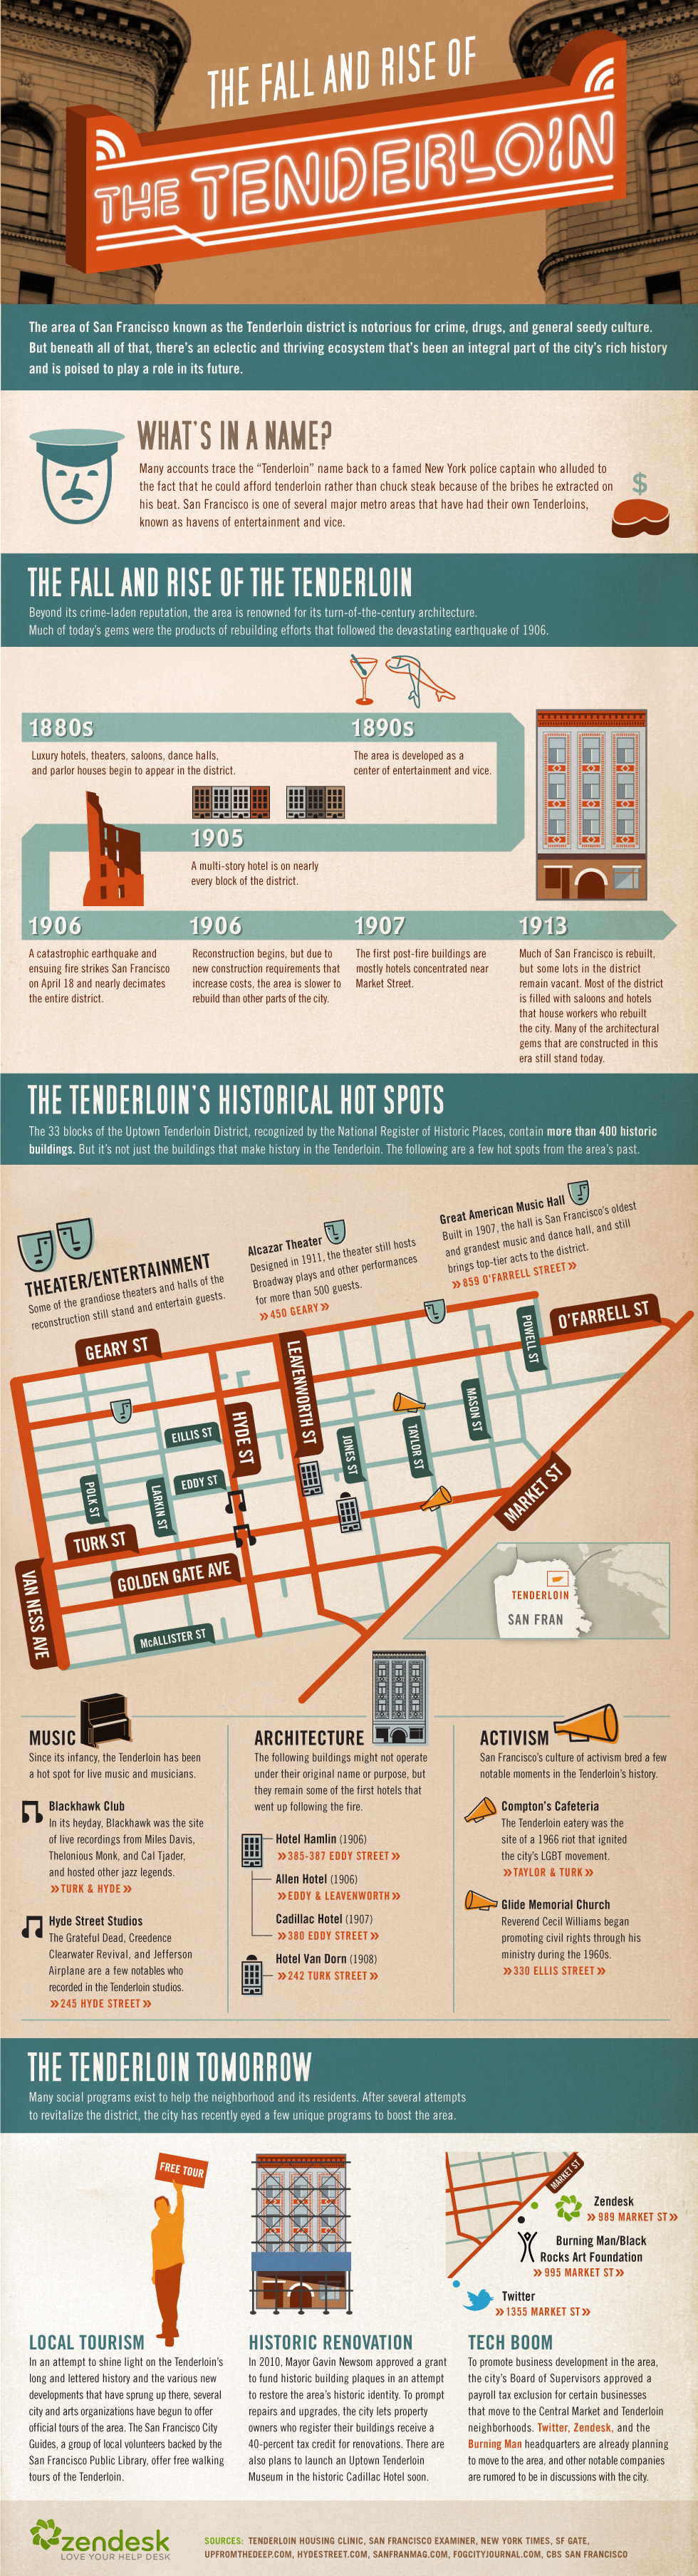 Fall and Rise of the Tenderloin